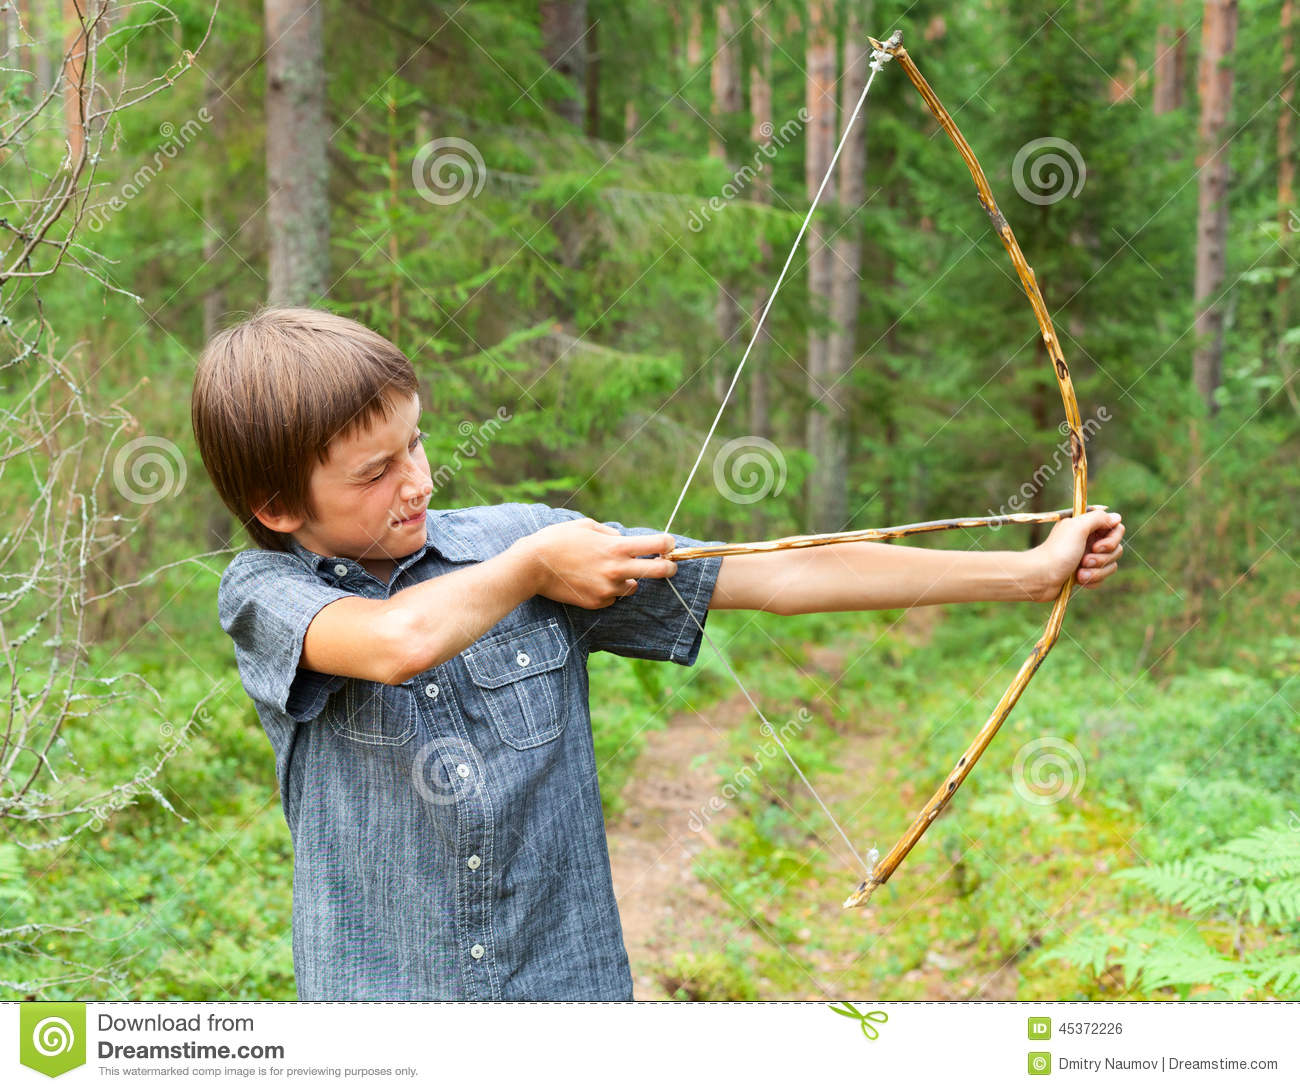 Kid with homemade bow and arrow stock photo image of for Arc en bois fait maison